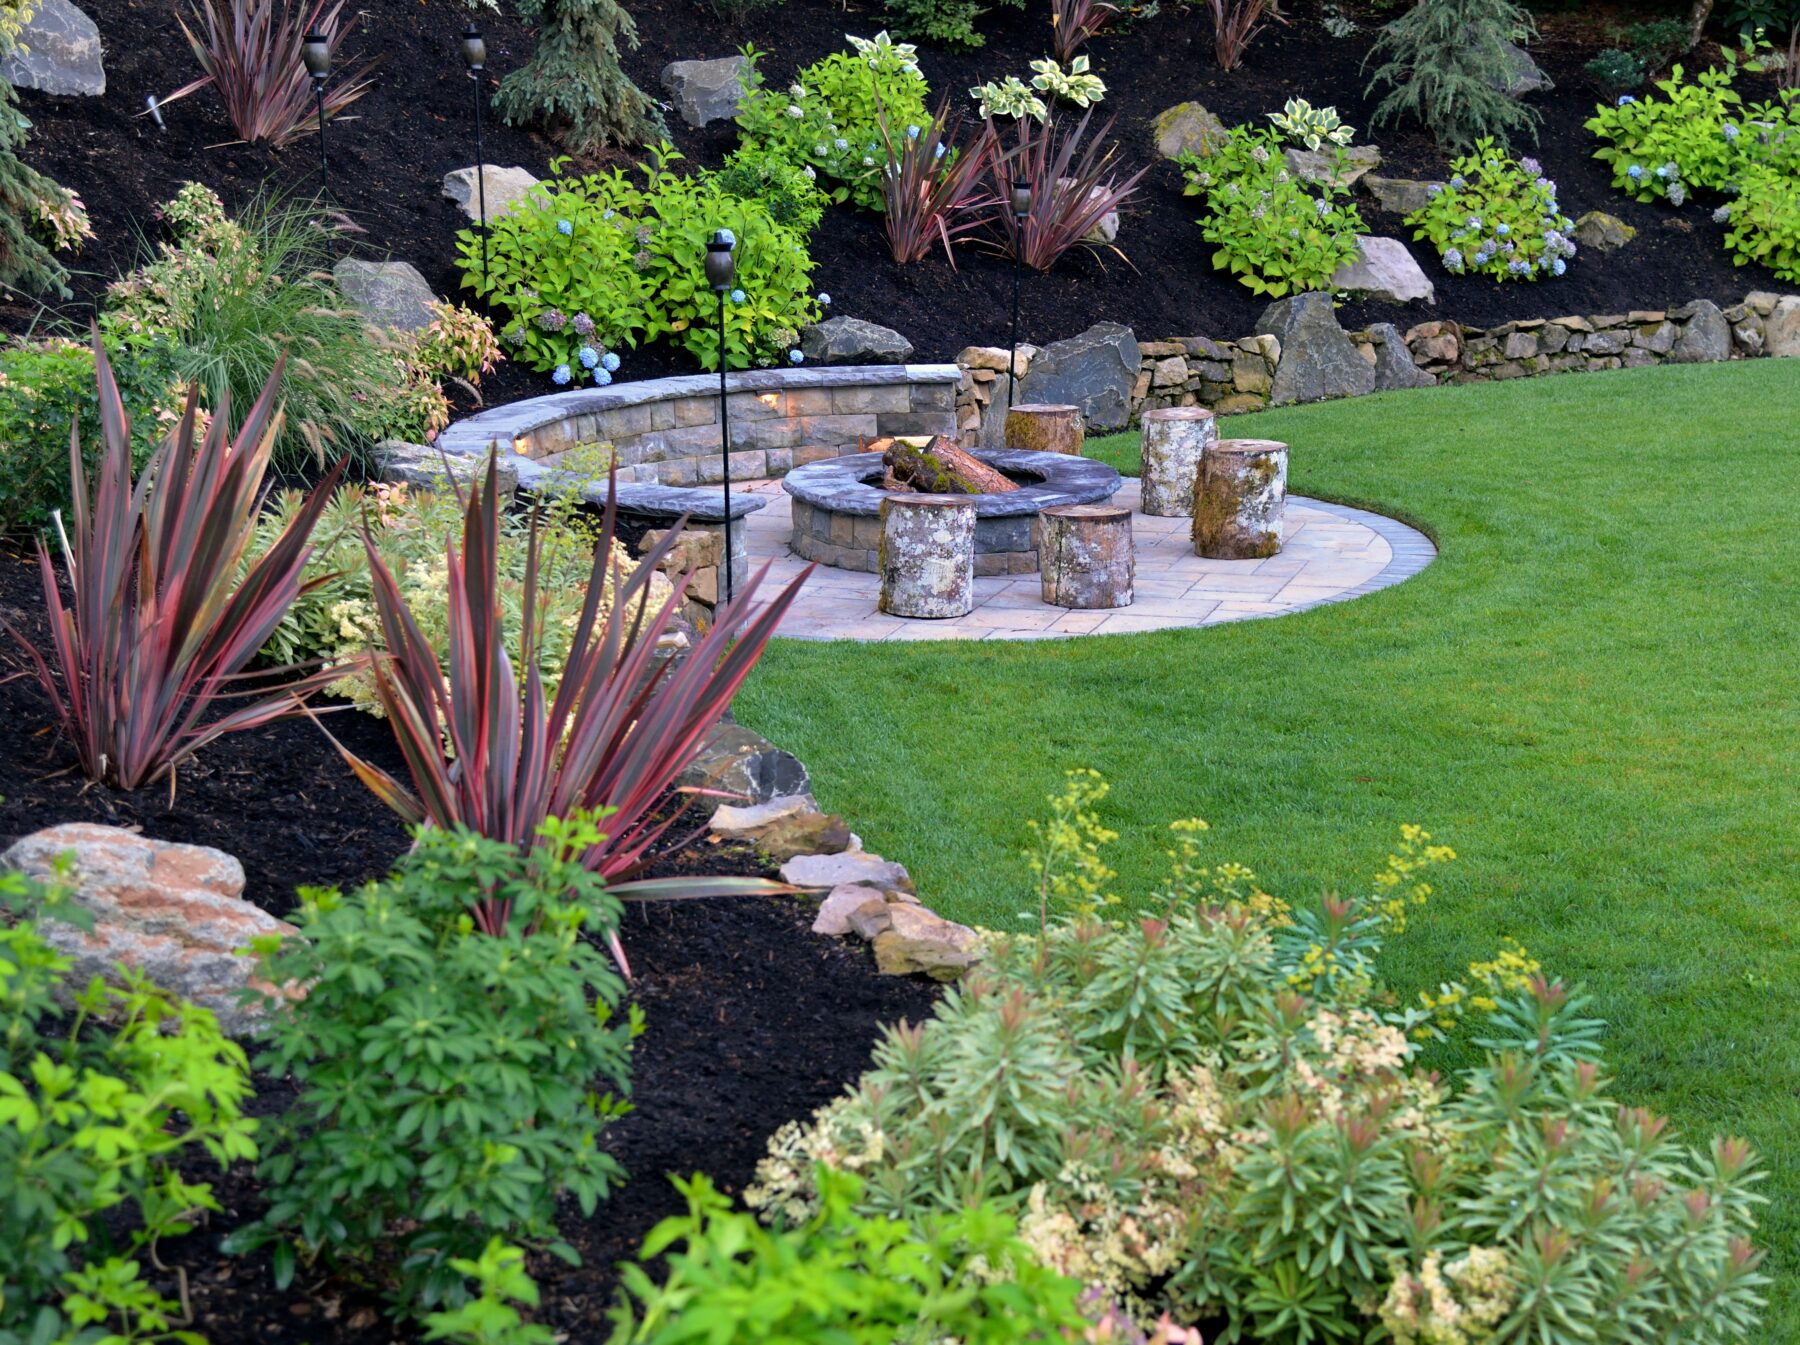 An example of Welches landscape design and landscape construction work